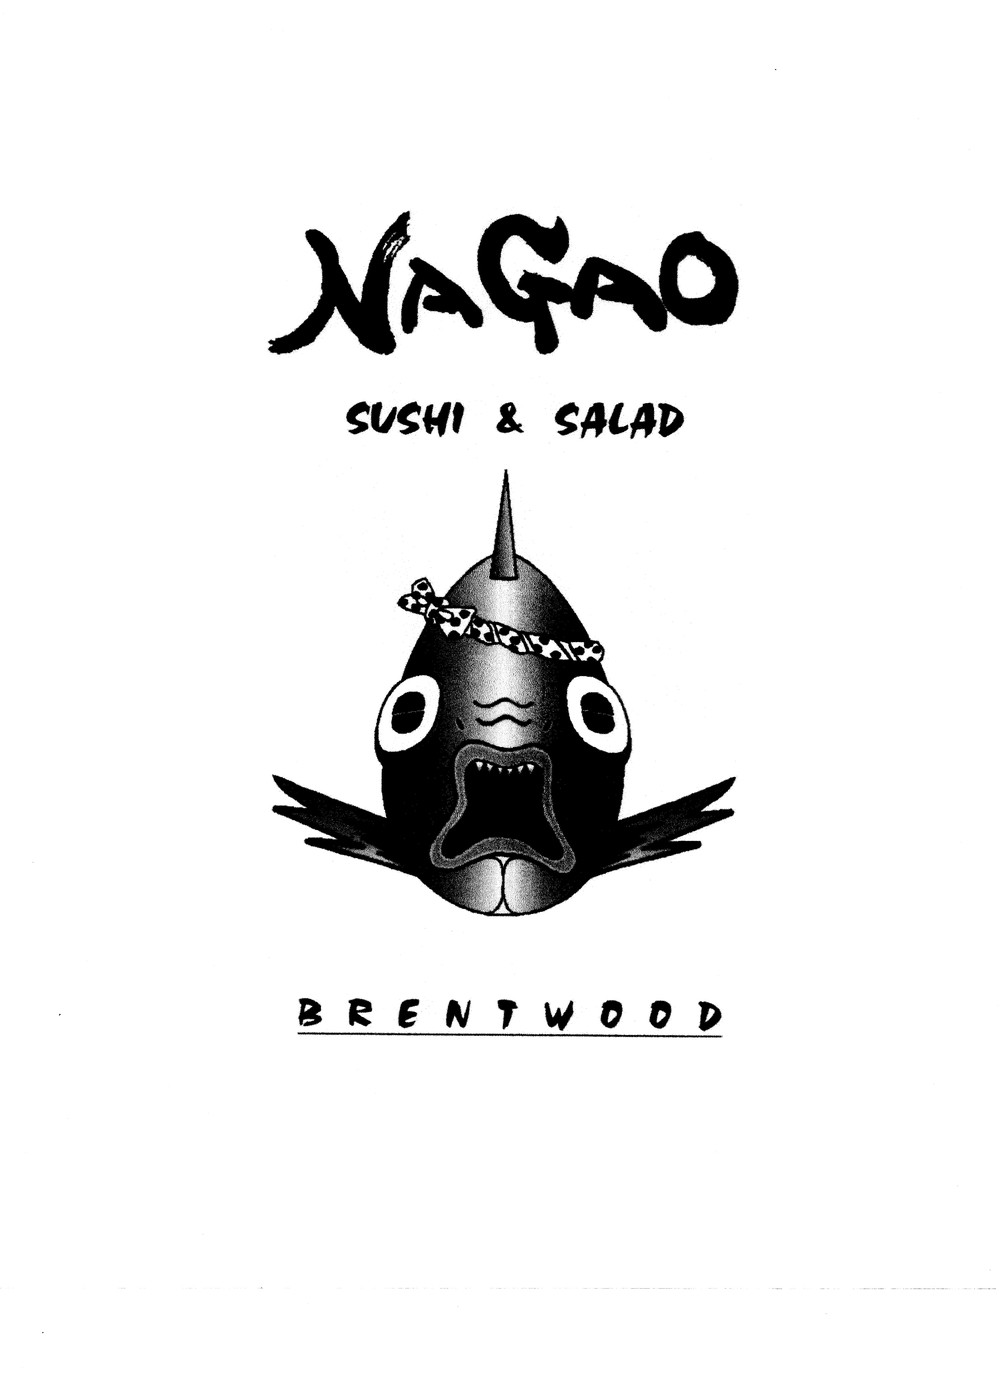 The original logo and art used since Nagao's opening in 1997.